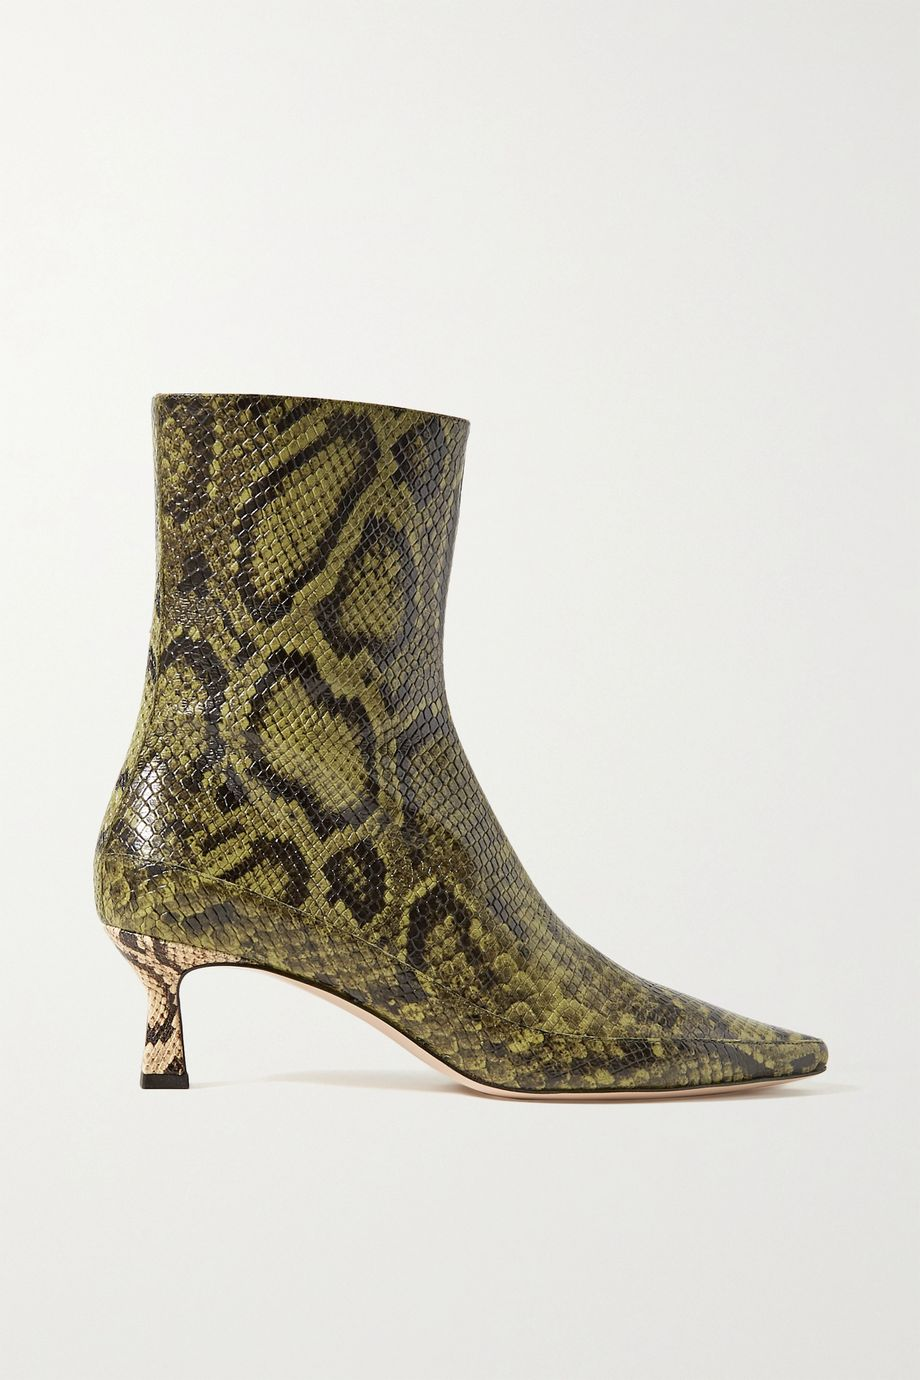 Wandler Bente snake-effect leather ankle boots